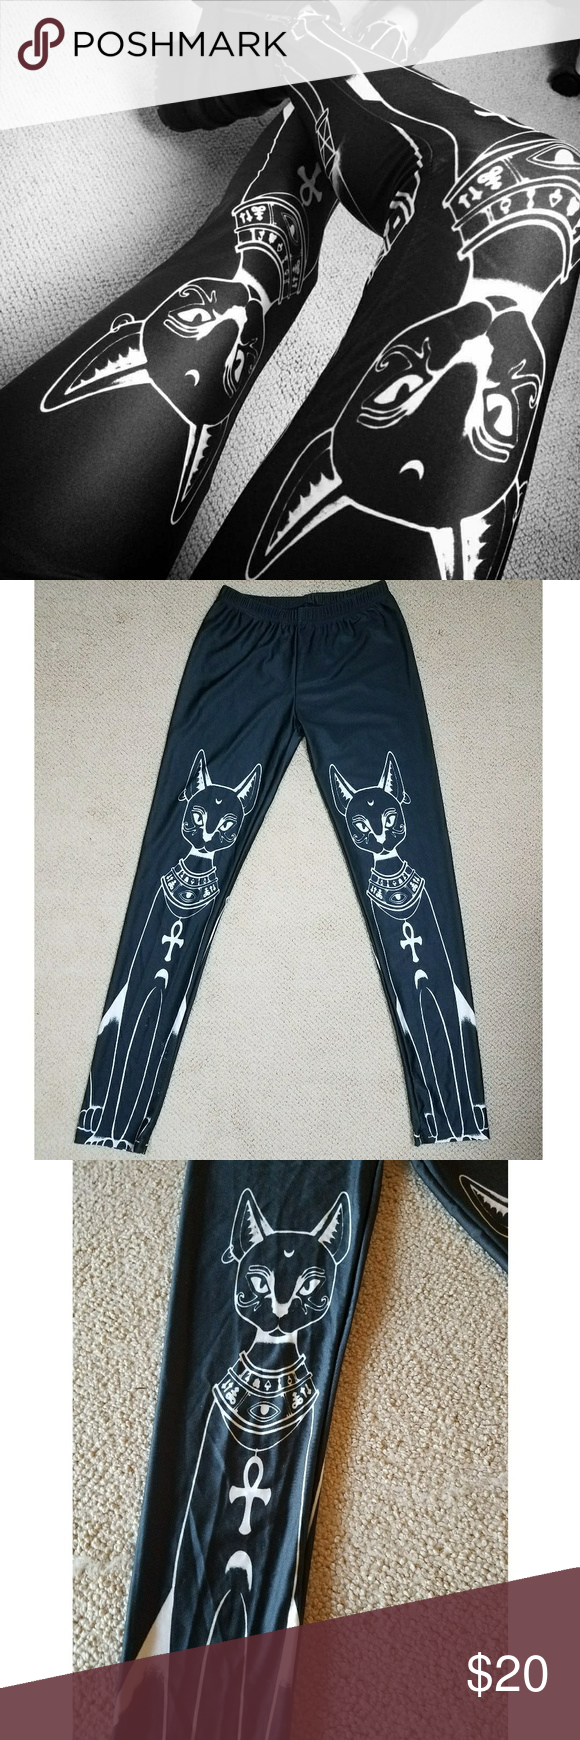 Egyptian Bast Cat Leggings Gothic Occult Witchy Bast print